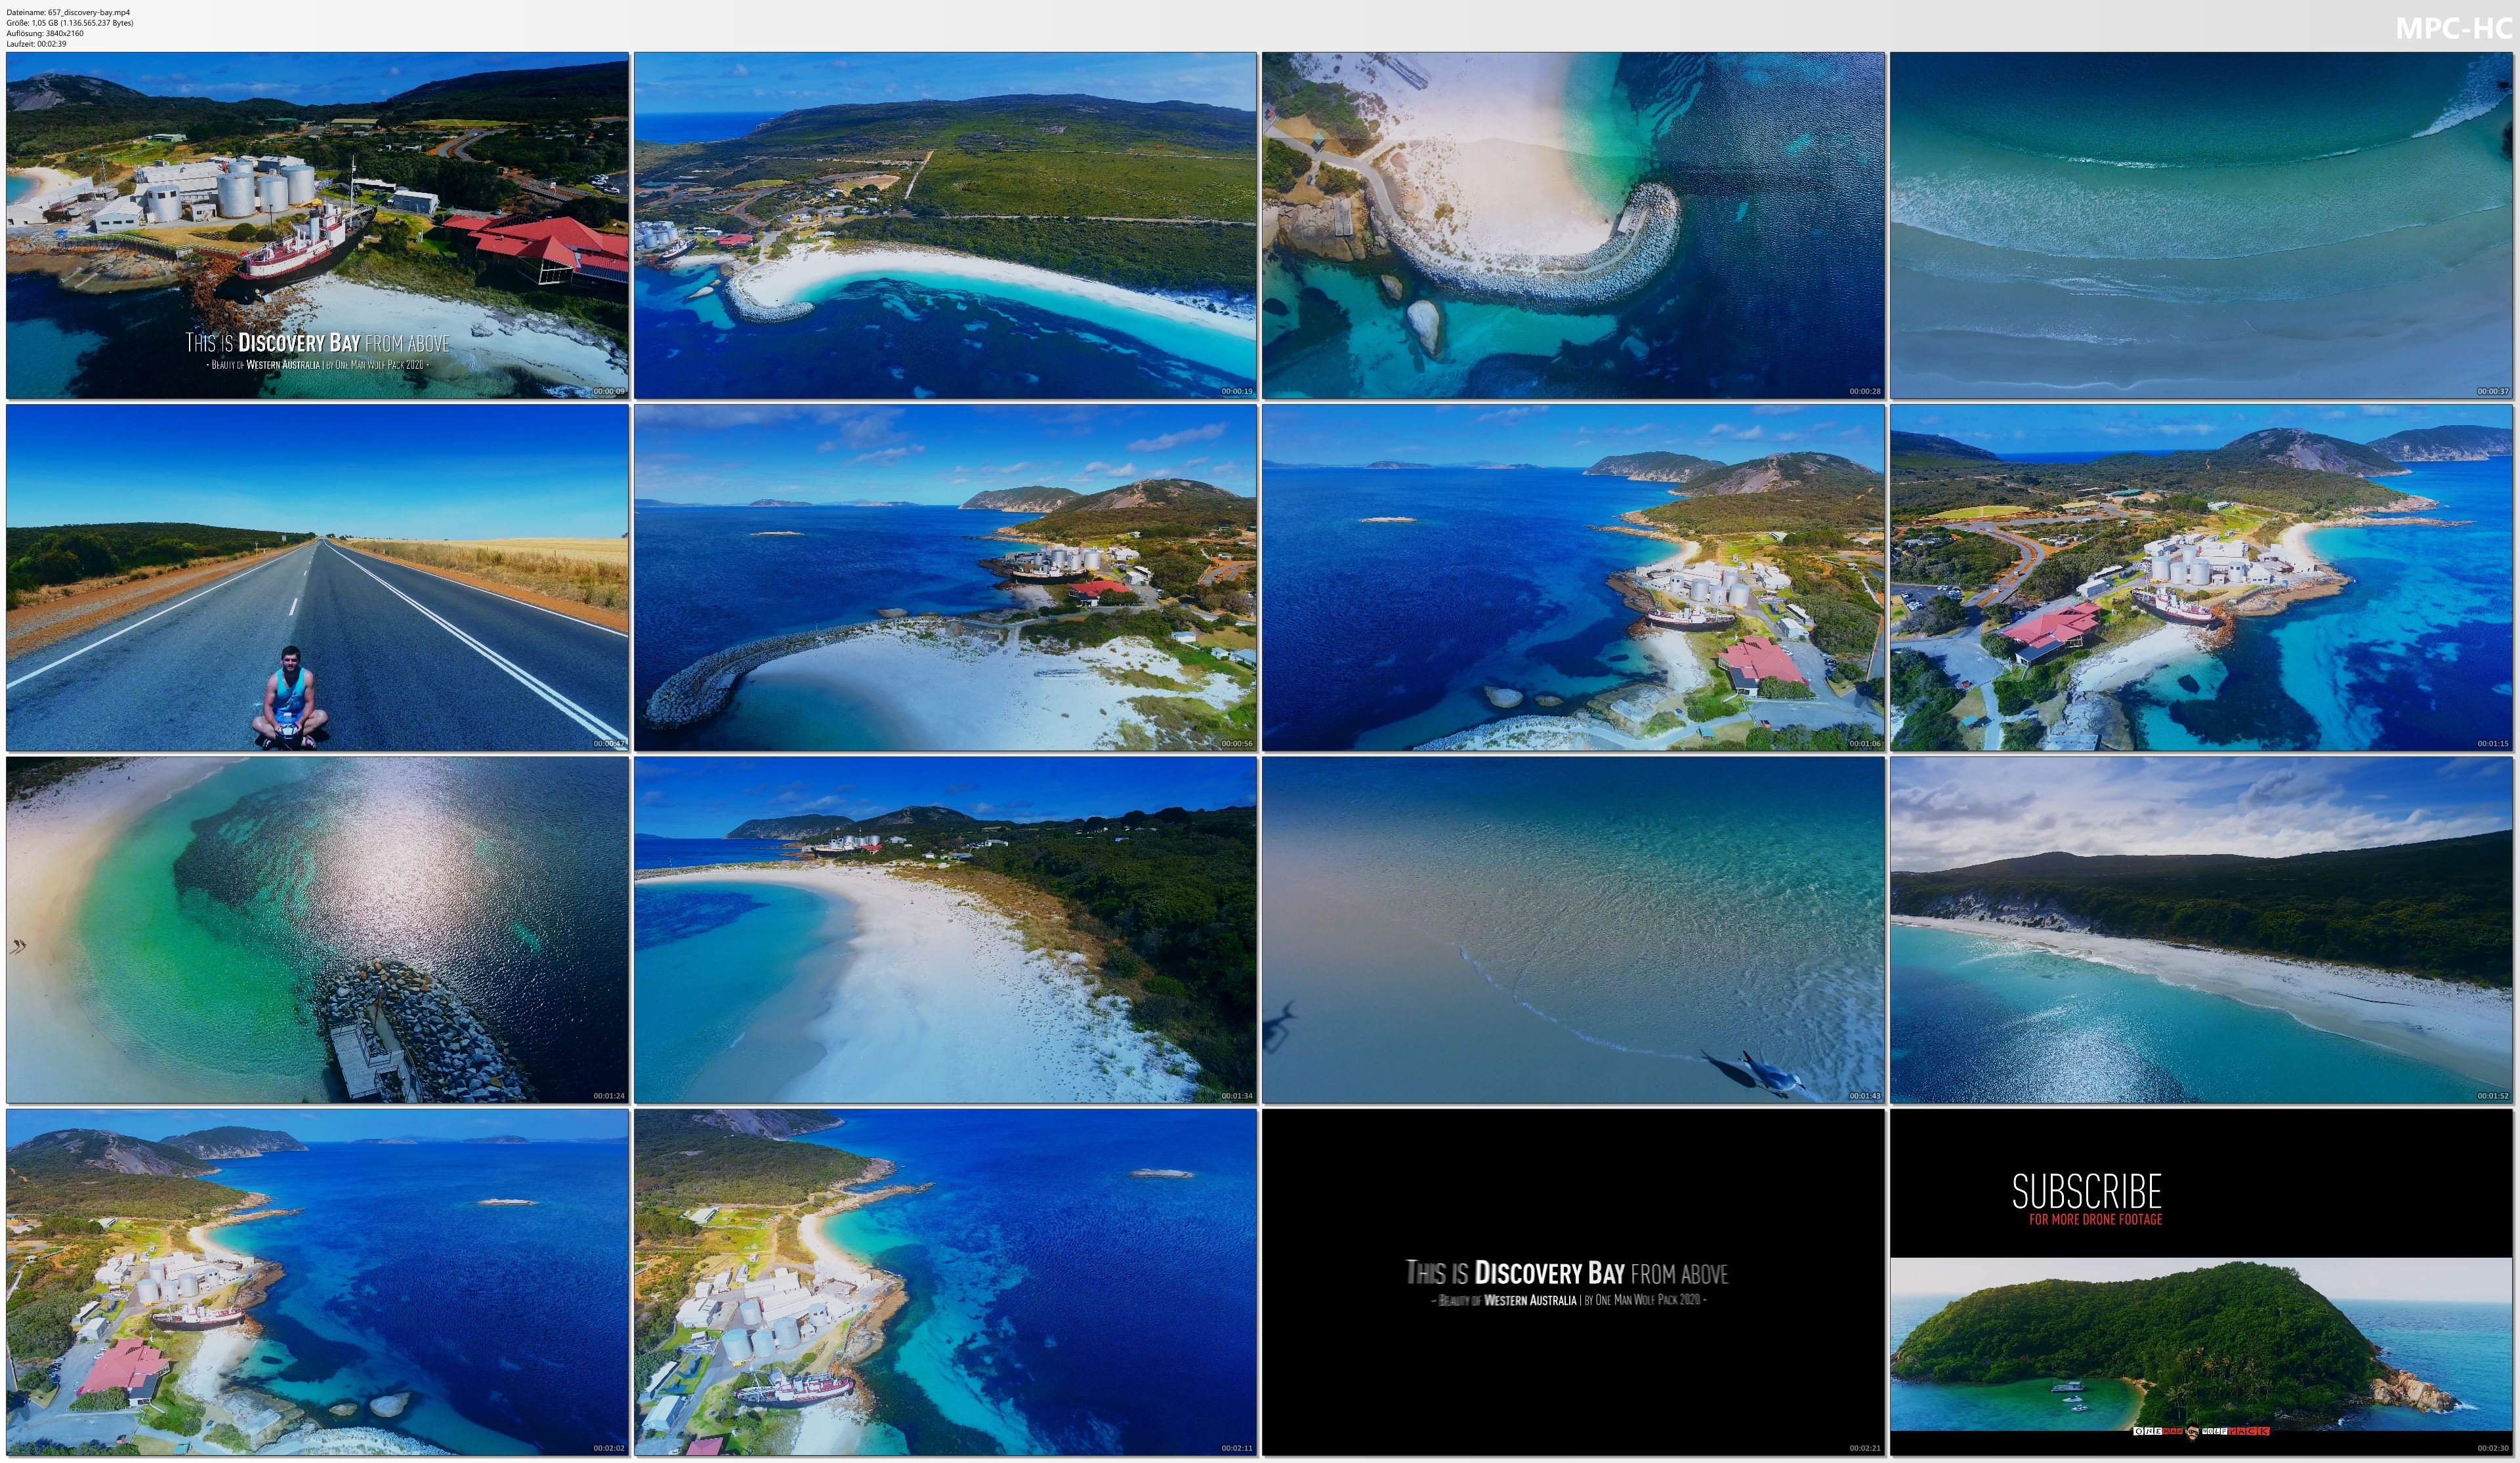 Drone Pictures from Video 【4K】Discovery Bay from Above - WESTERN AUSTRALIA 2020 | Cinematic Wolf Aerial™ Drone Film